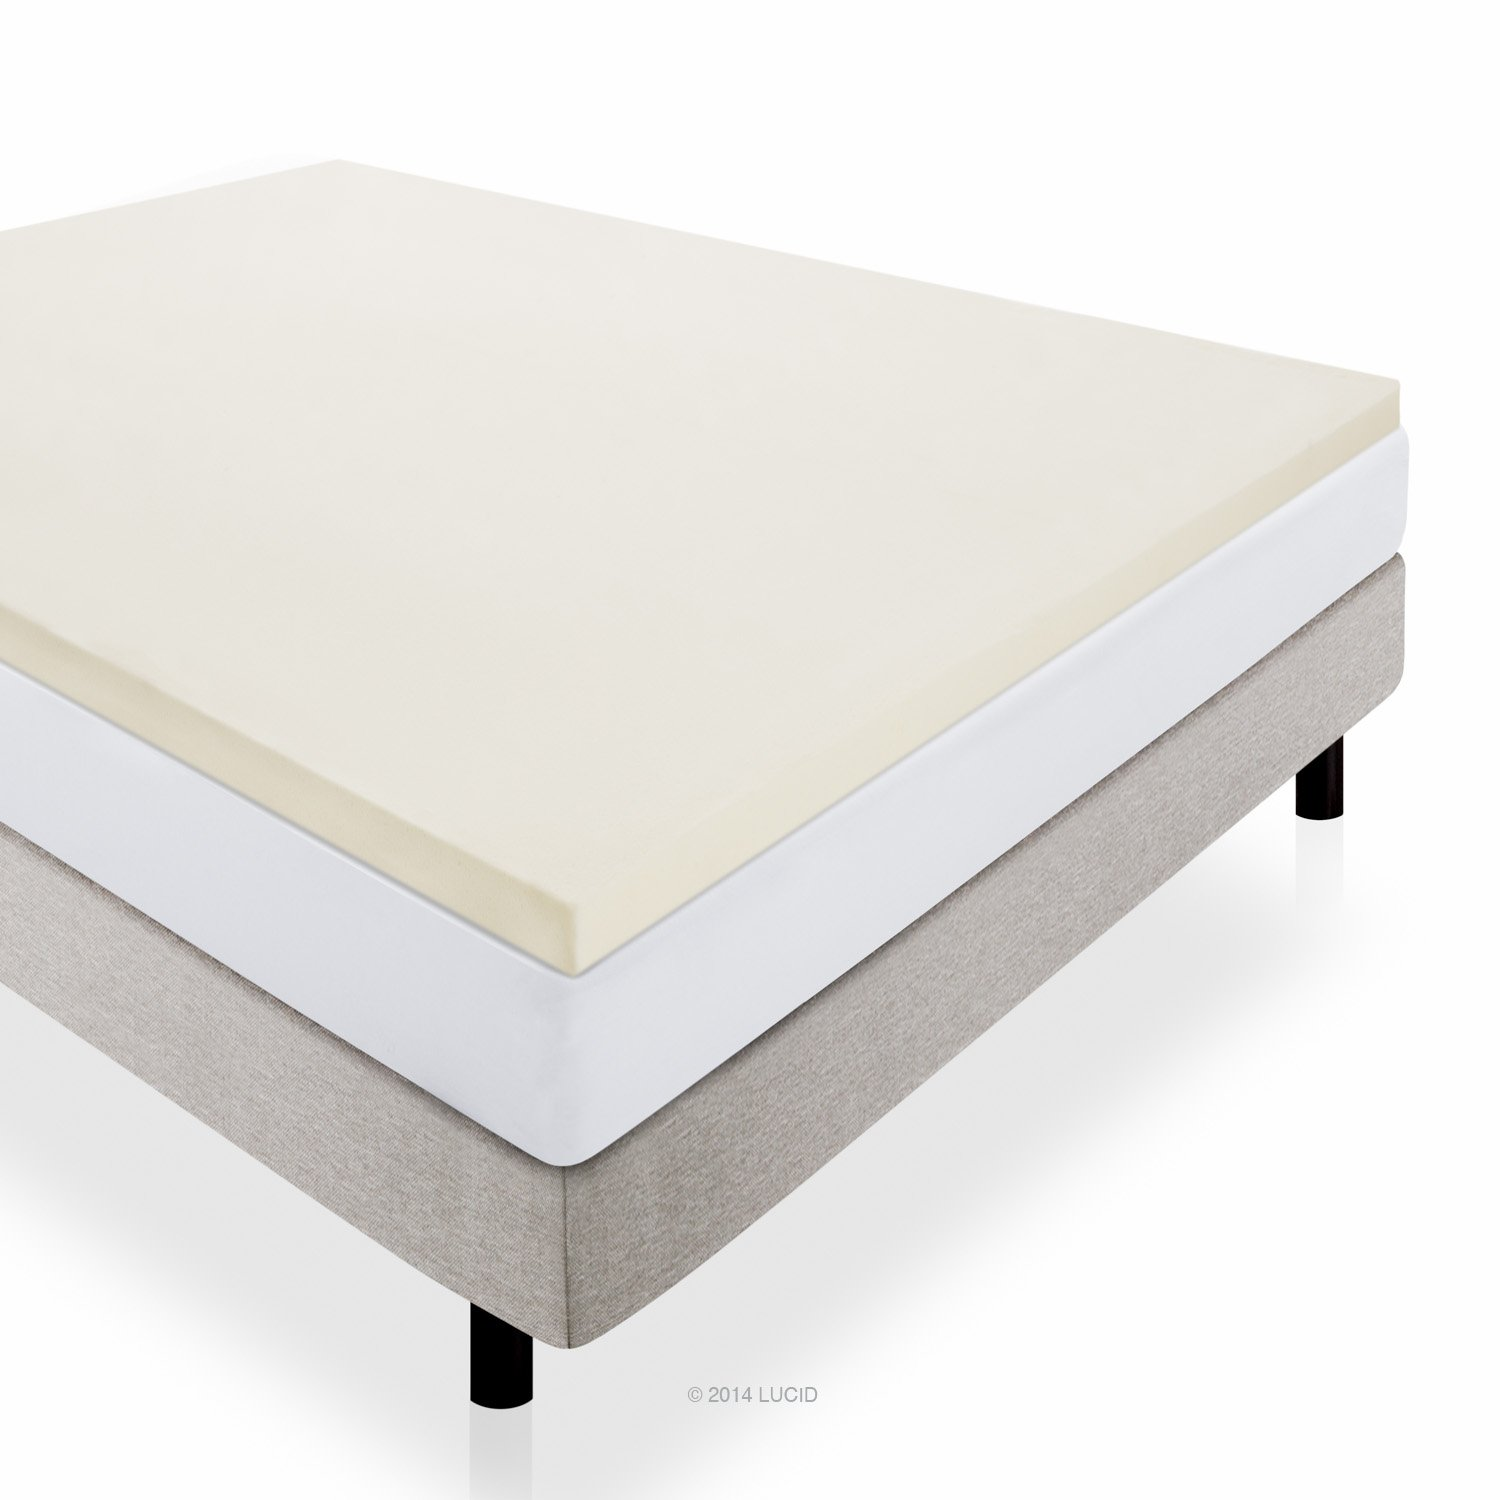 Lucid® by Linenspa 2-inch Foam Mattress Topper 3-Year Warranty